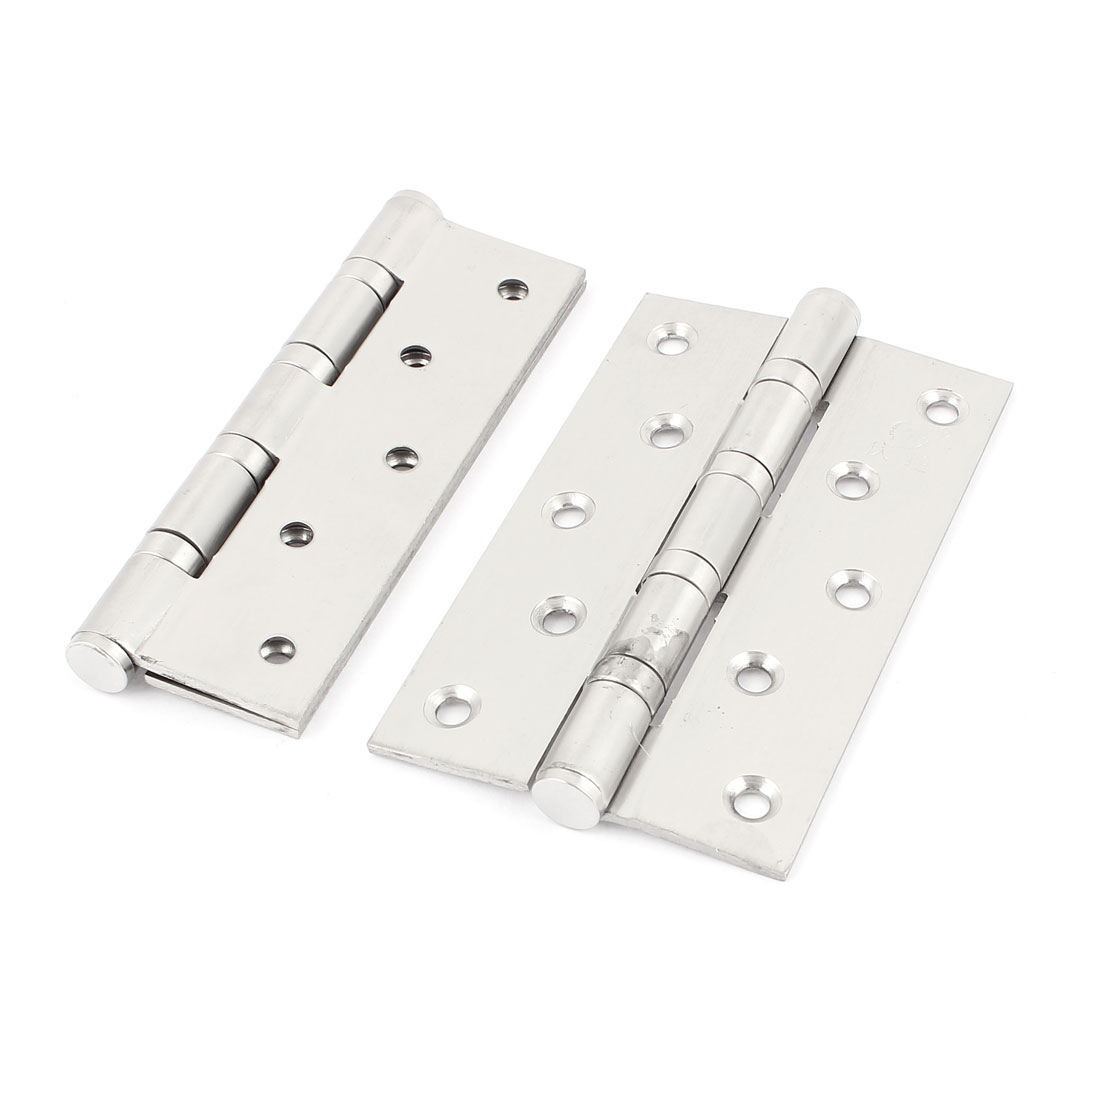 "Cupboard Cabinet Stainless Steel Folding Door Butt Hinges 5"" Length 2 Pcs"